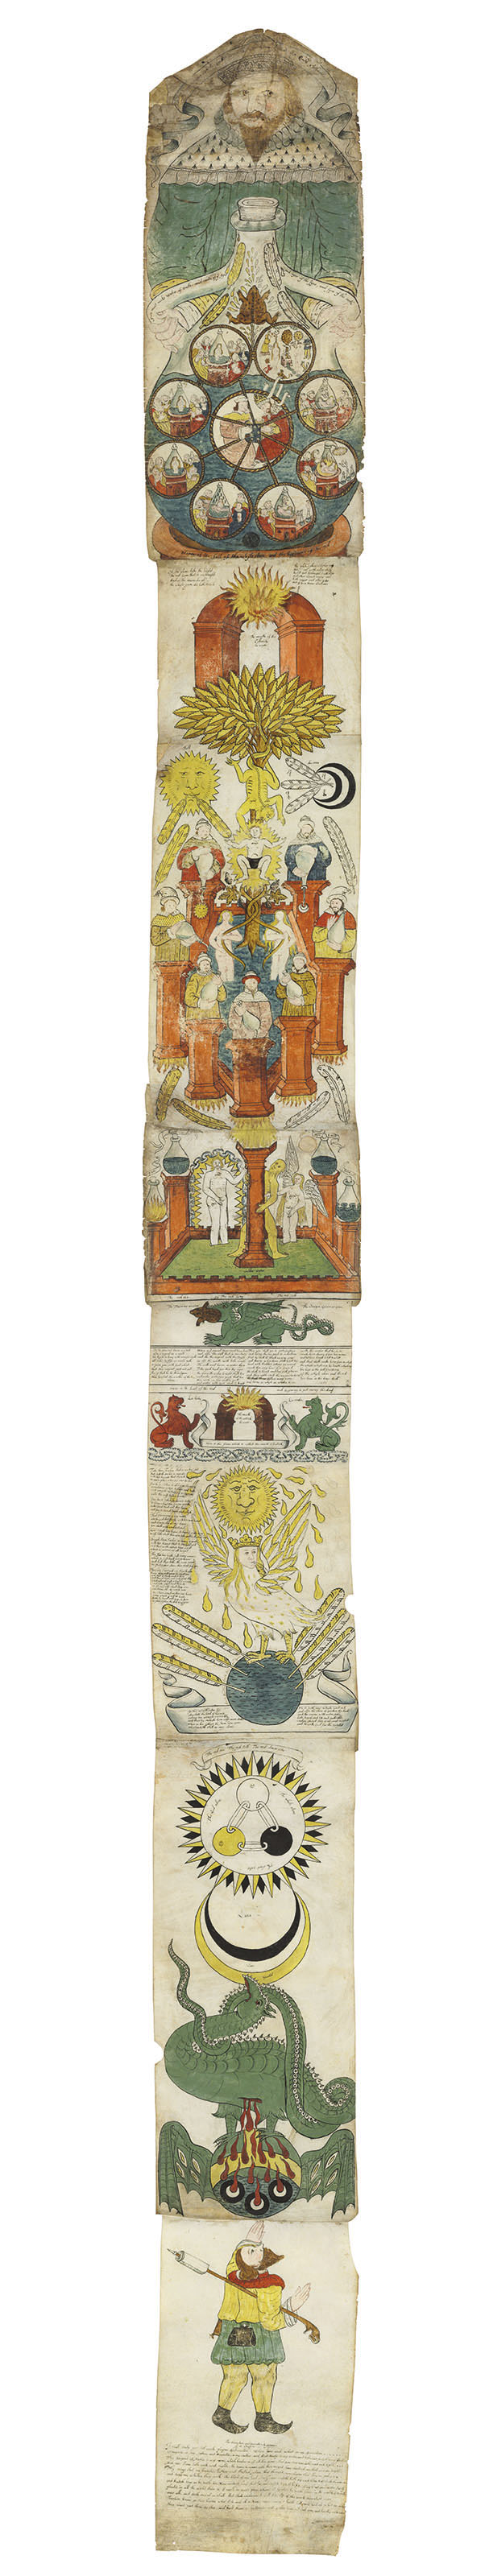 THE RIPLEY SCROLL, an illustra